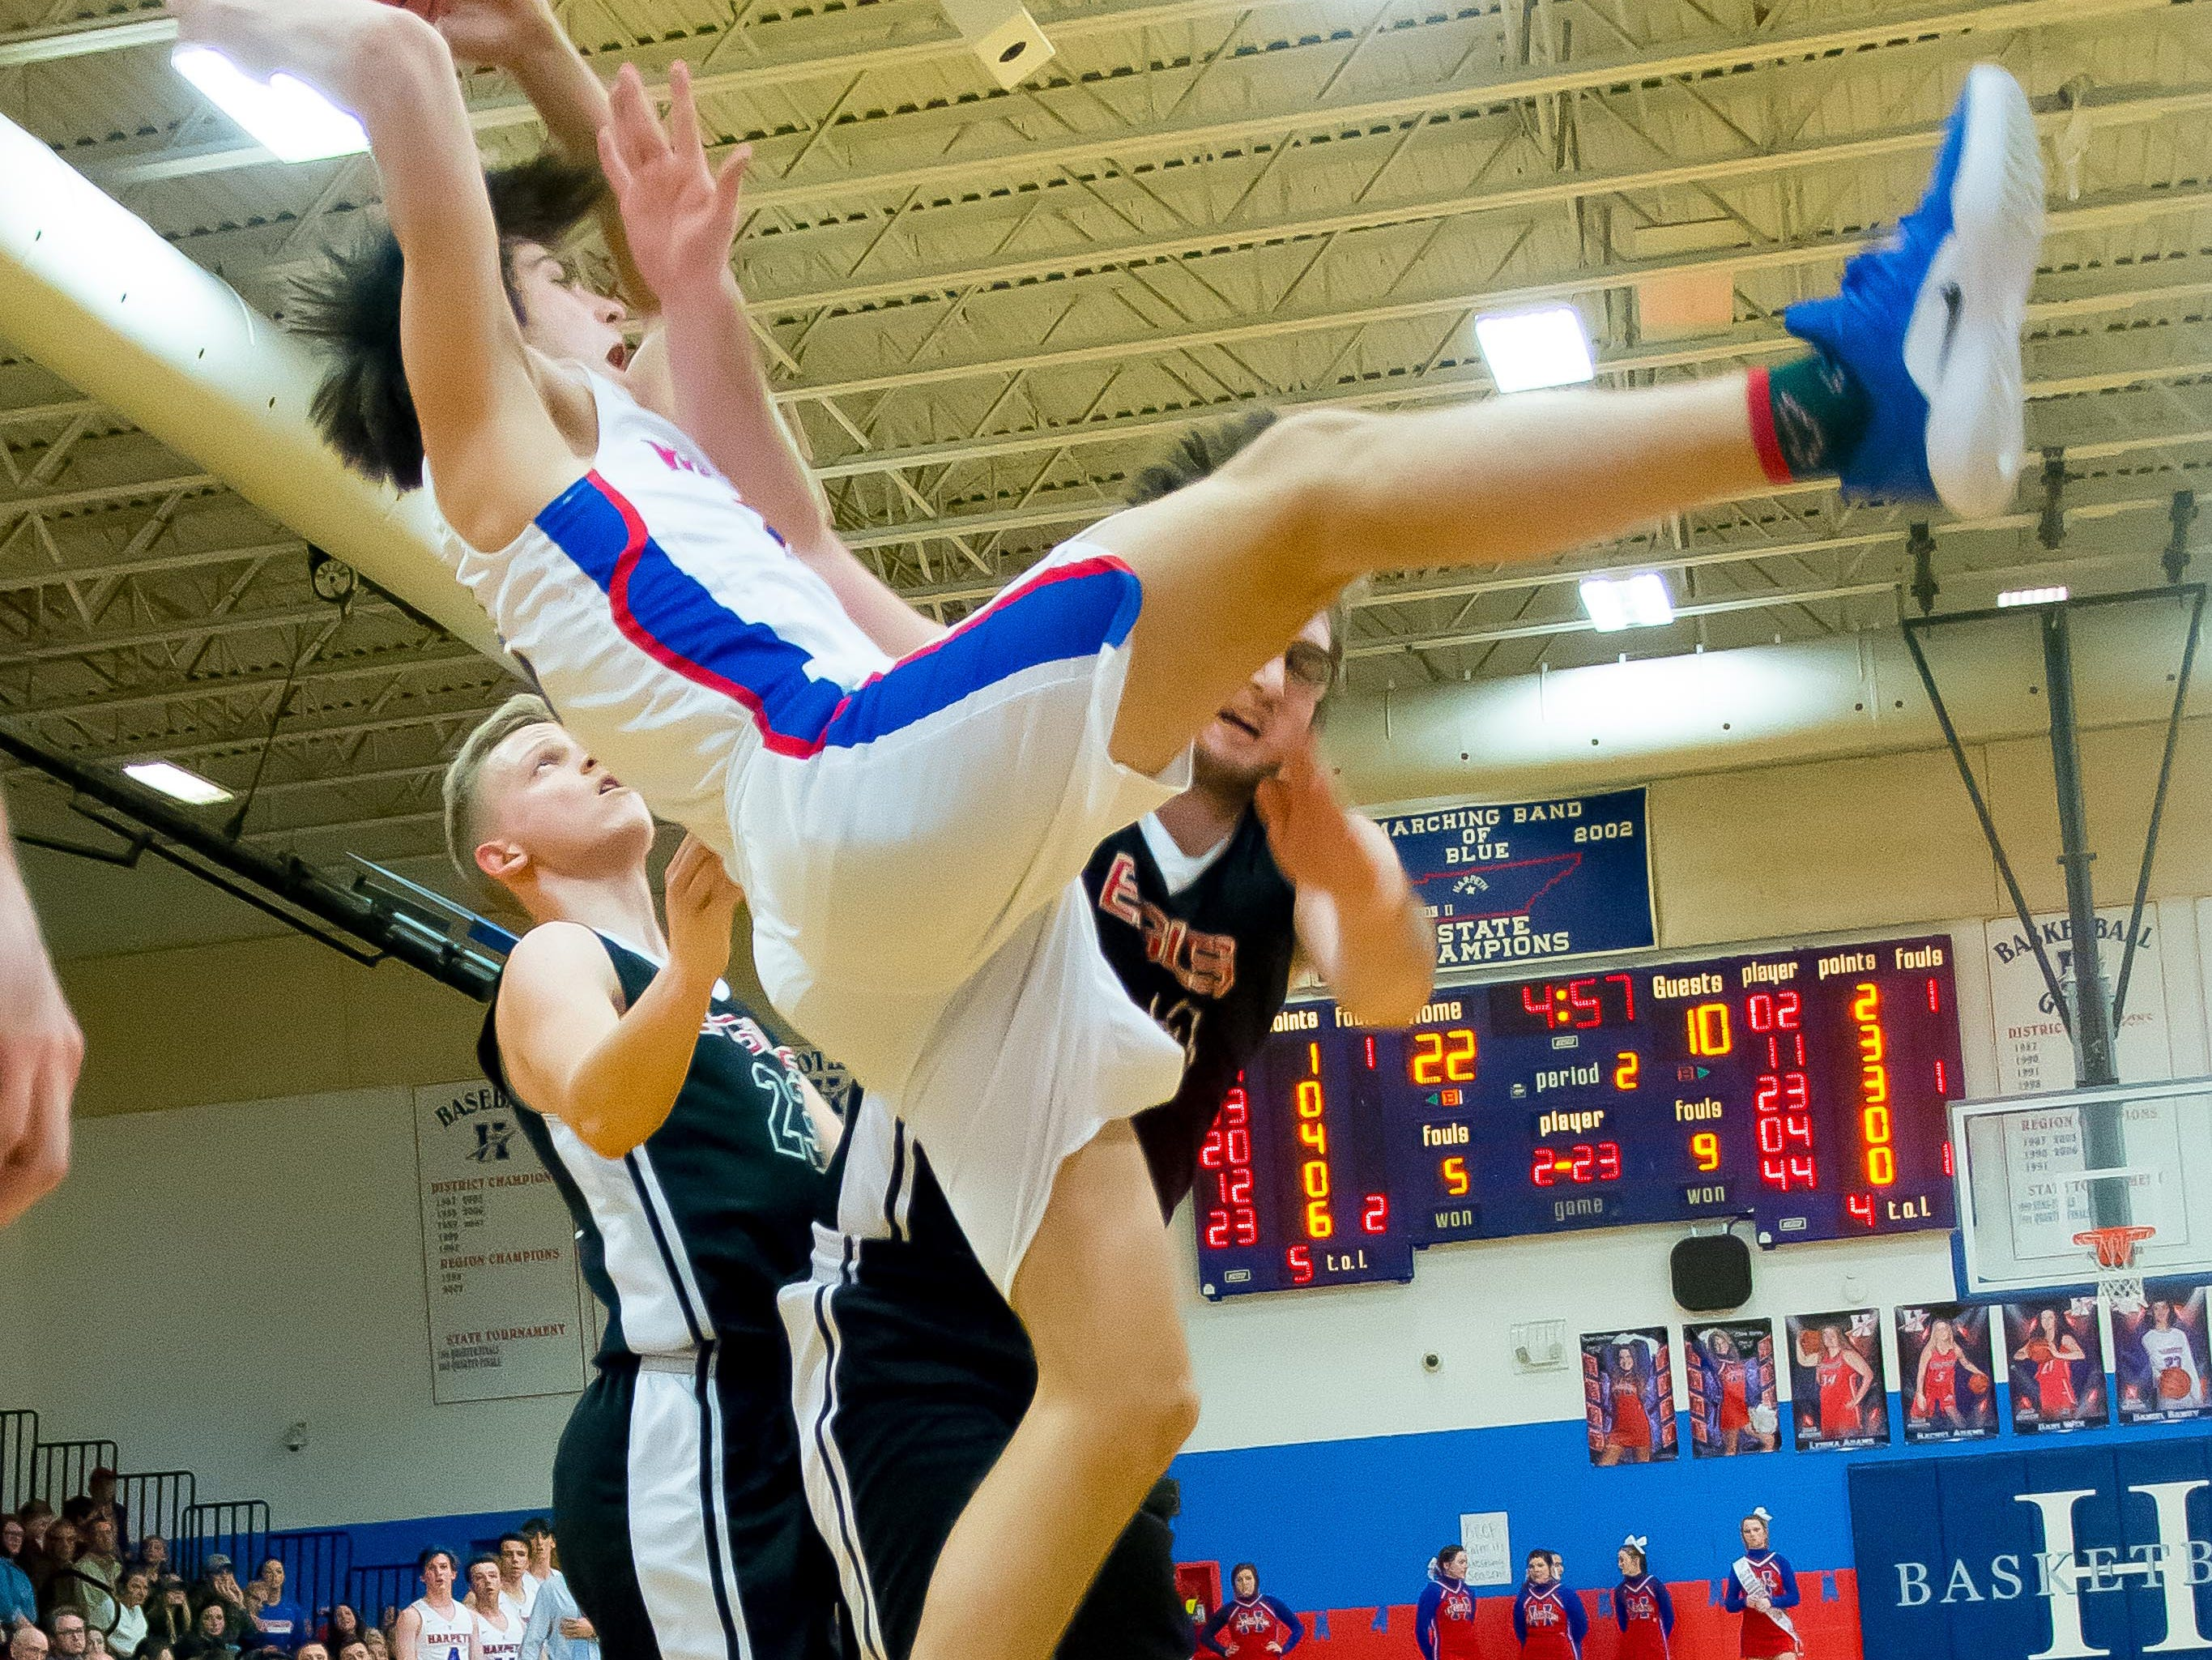 Harpeths Grayson Maddox comeing down with the rebound.